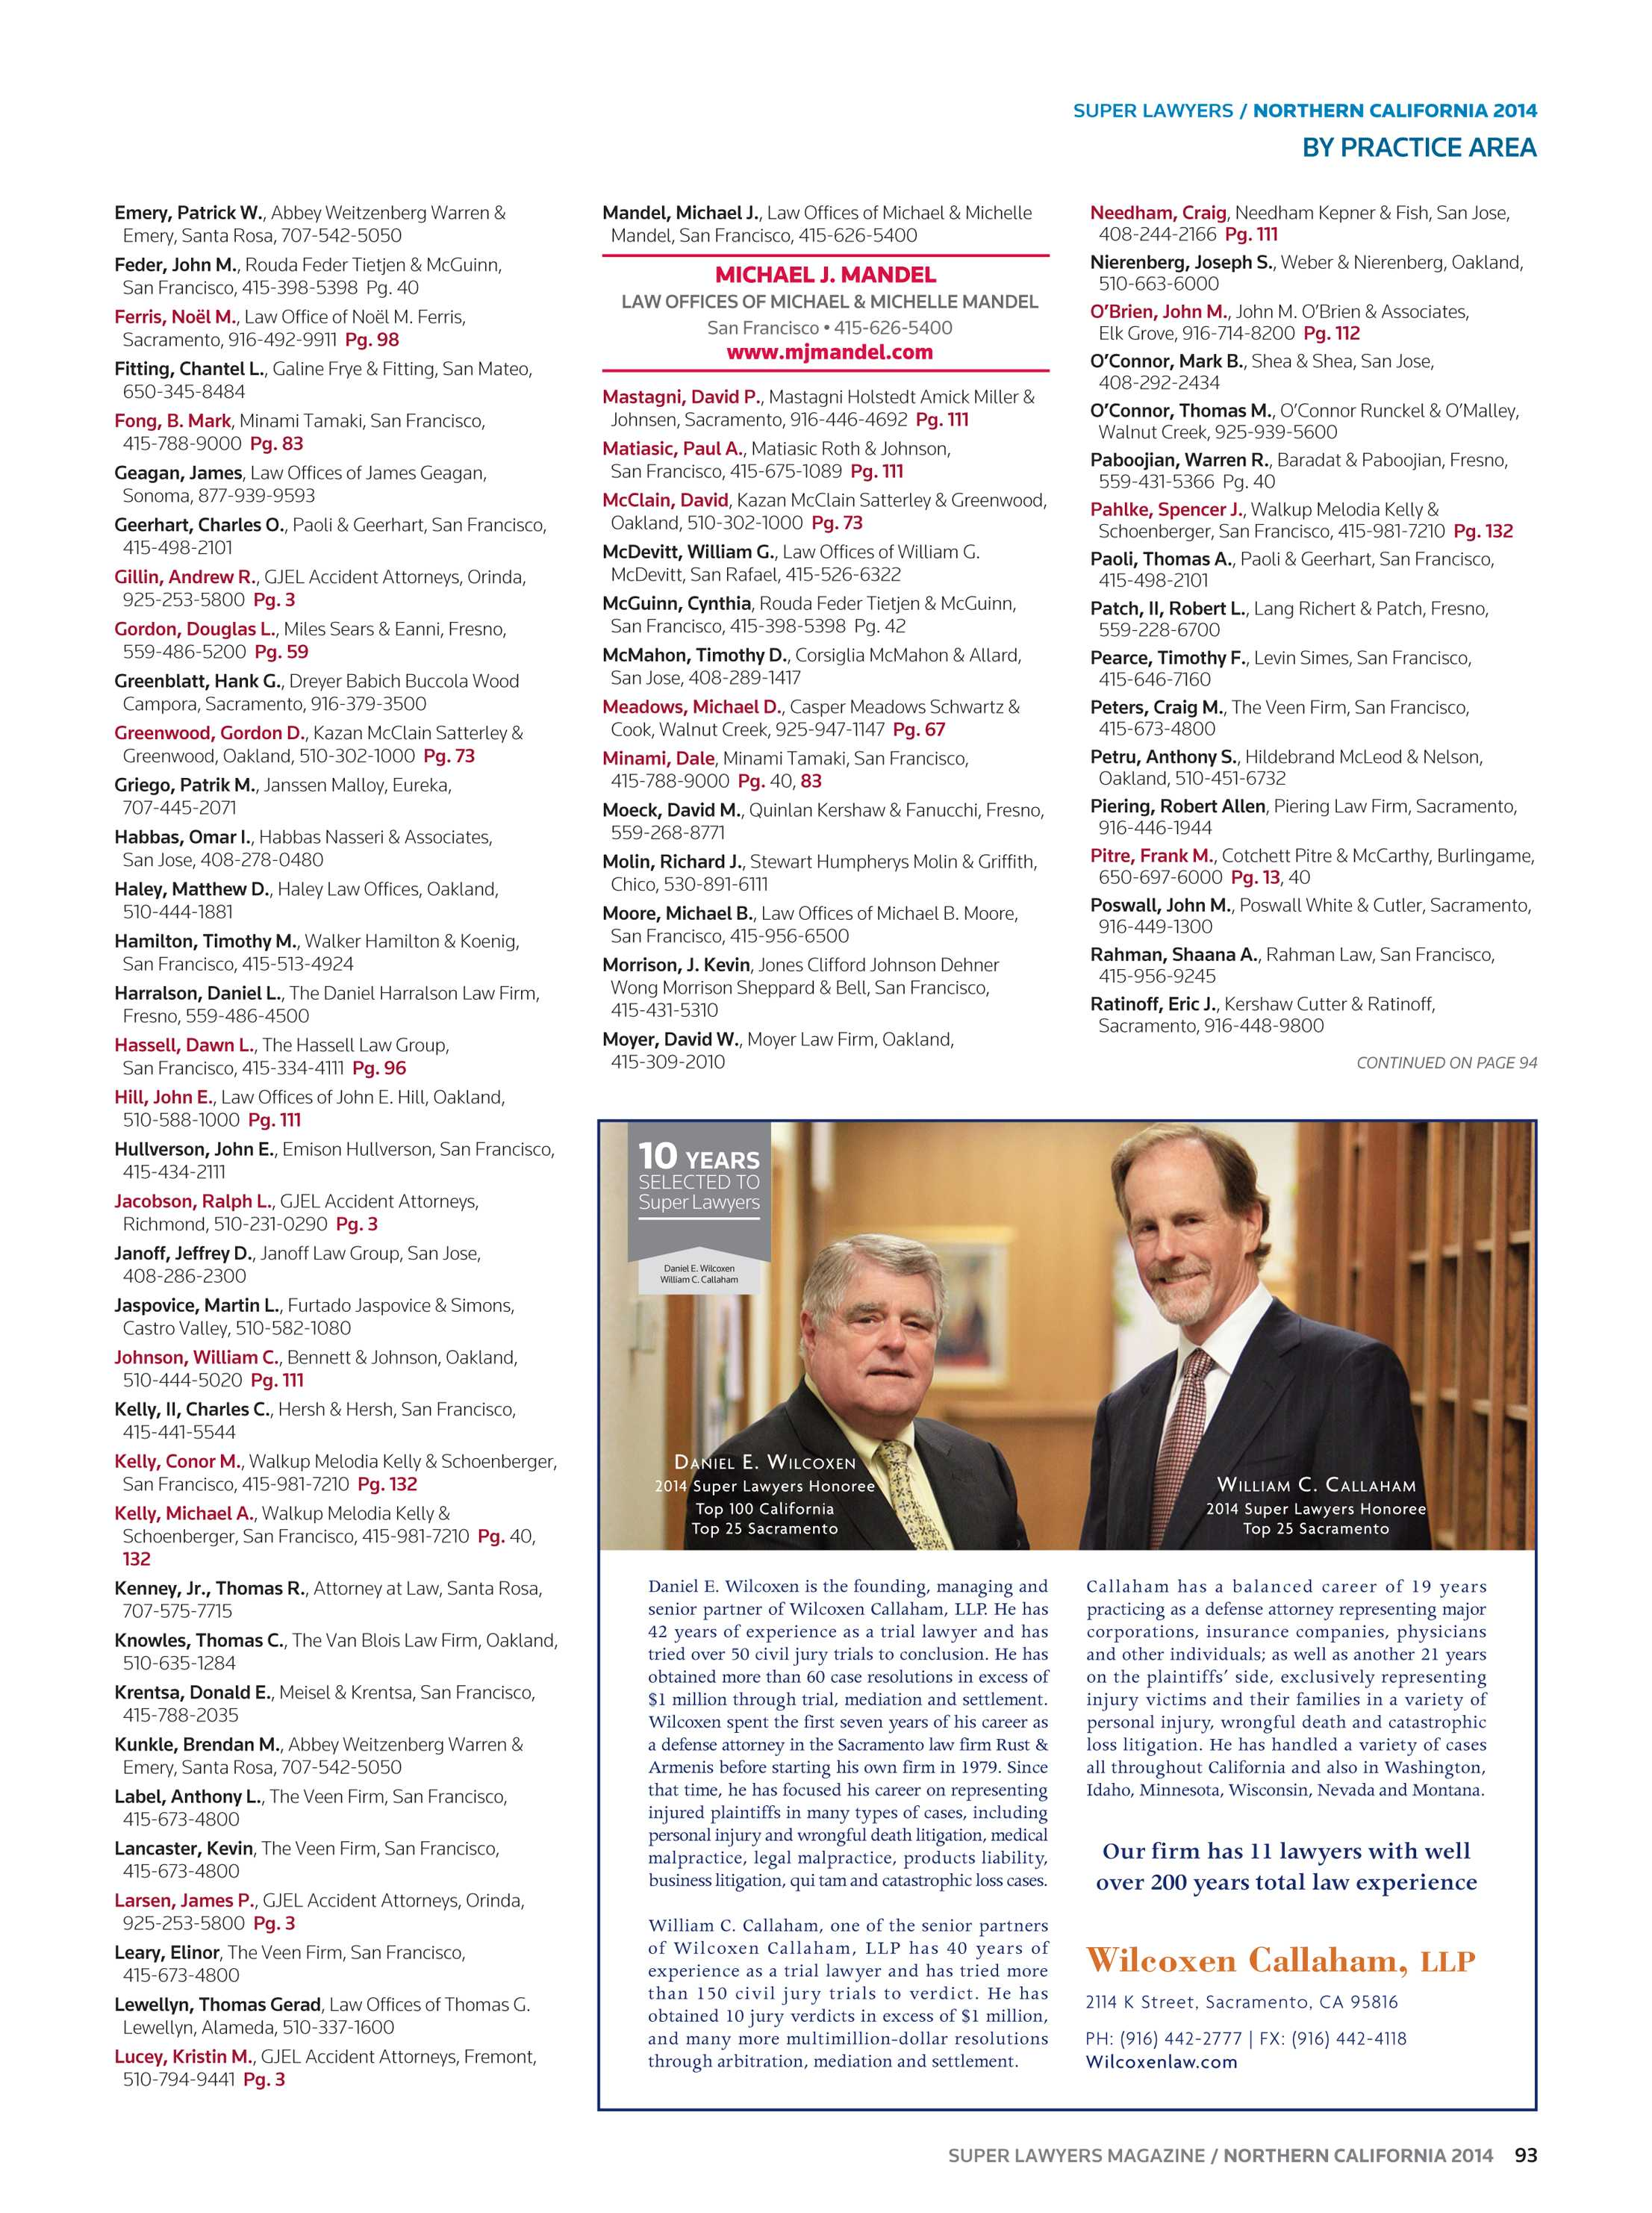 Super Lawyers - Northern California 2014 - page 93